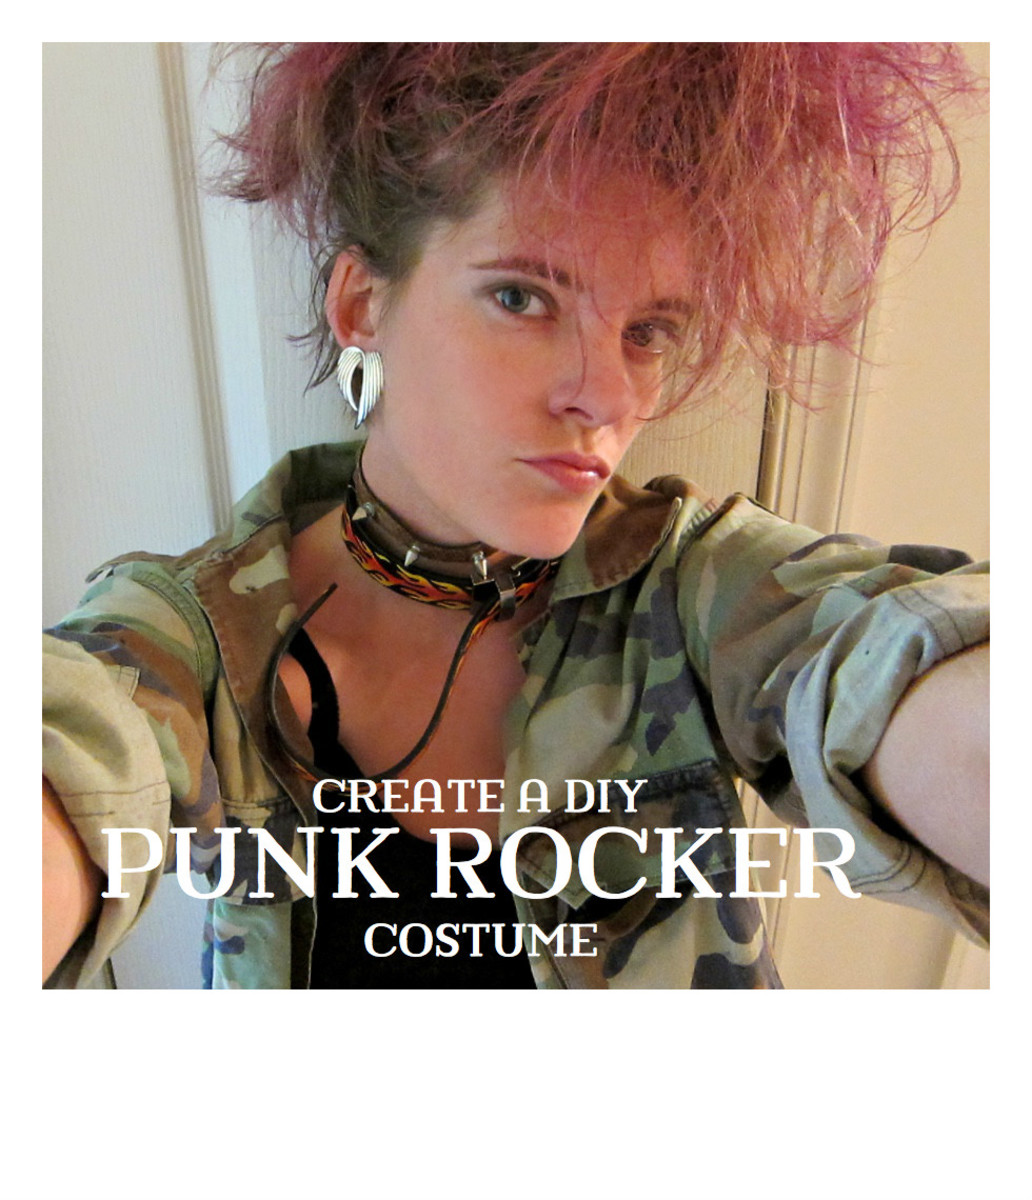 Making a Homemade Punk Costume: Ideas and Instructions